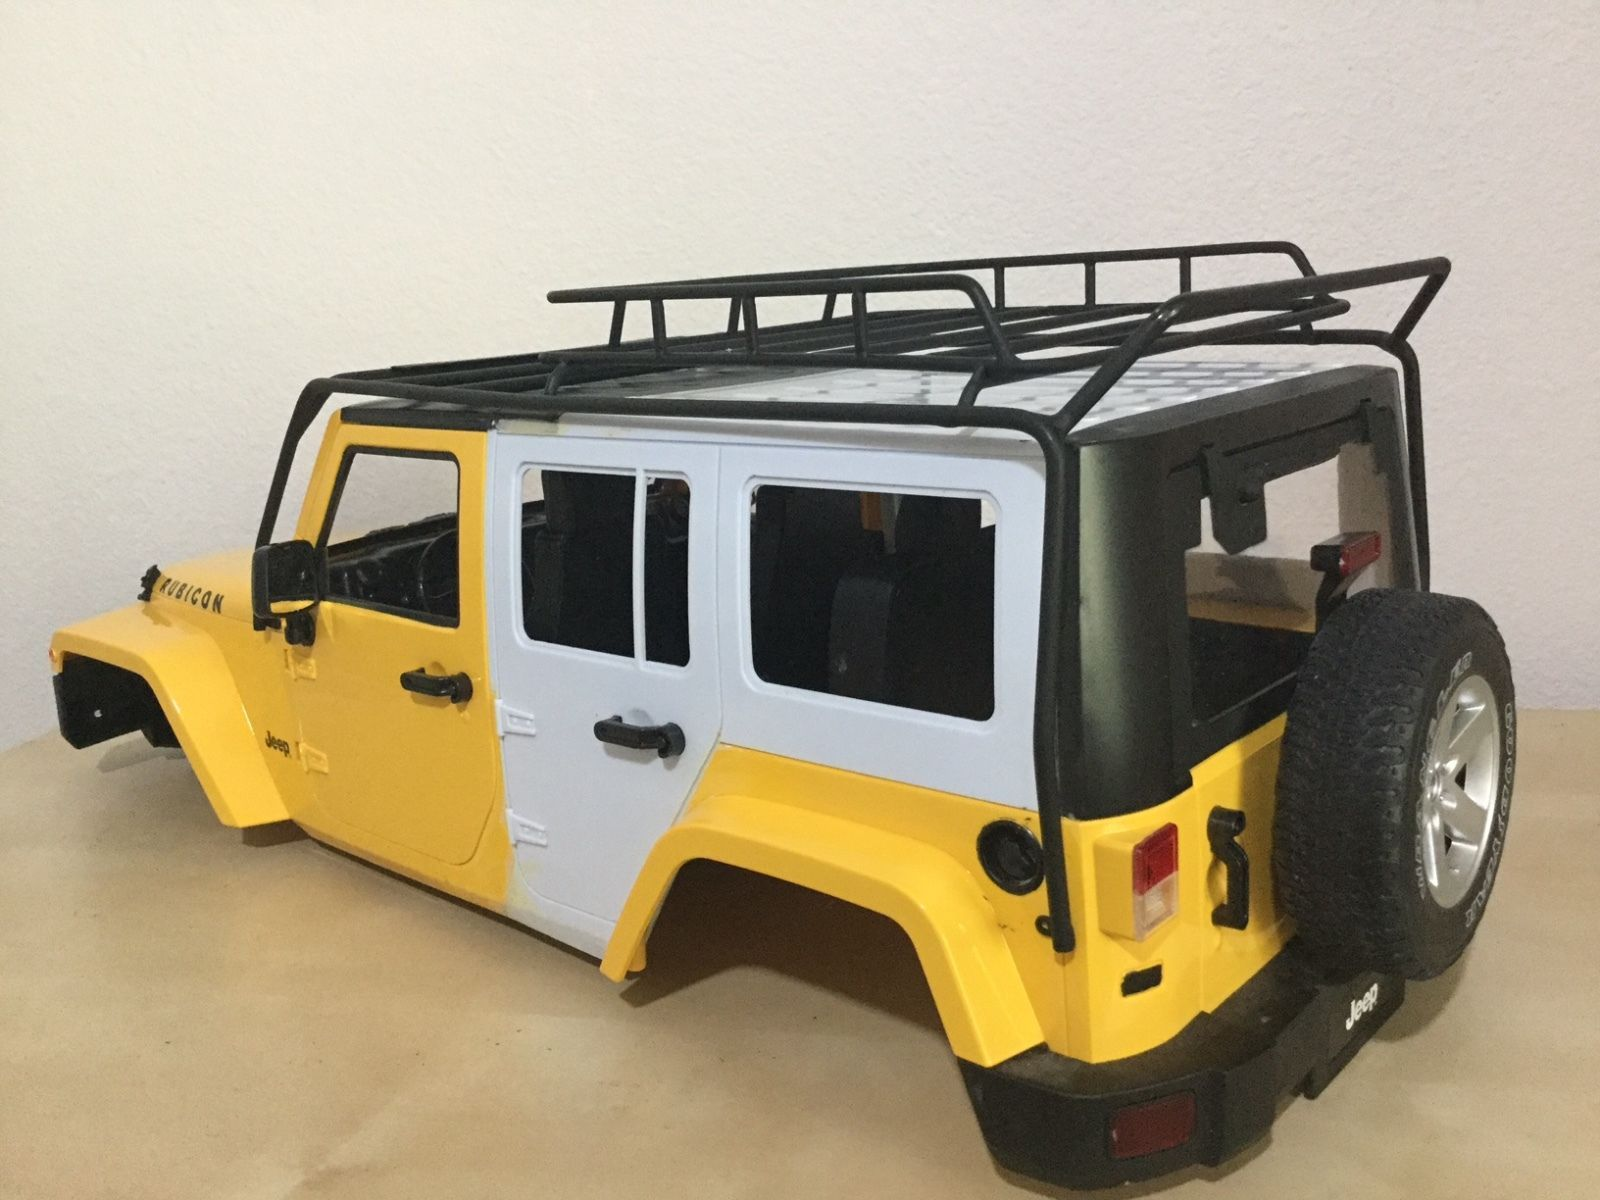 1 10 Scale Jeep Wrangler Rubicon 5 Doors 313 Mm Hand Made W Metal Roof Rack Jeep Wrangler Rubicon Roof Rack Metal Roof